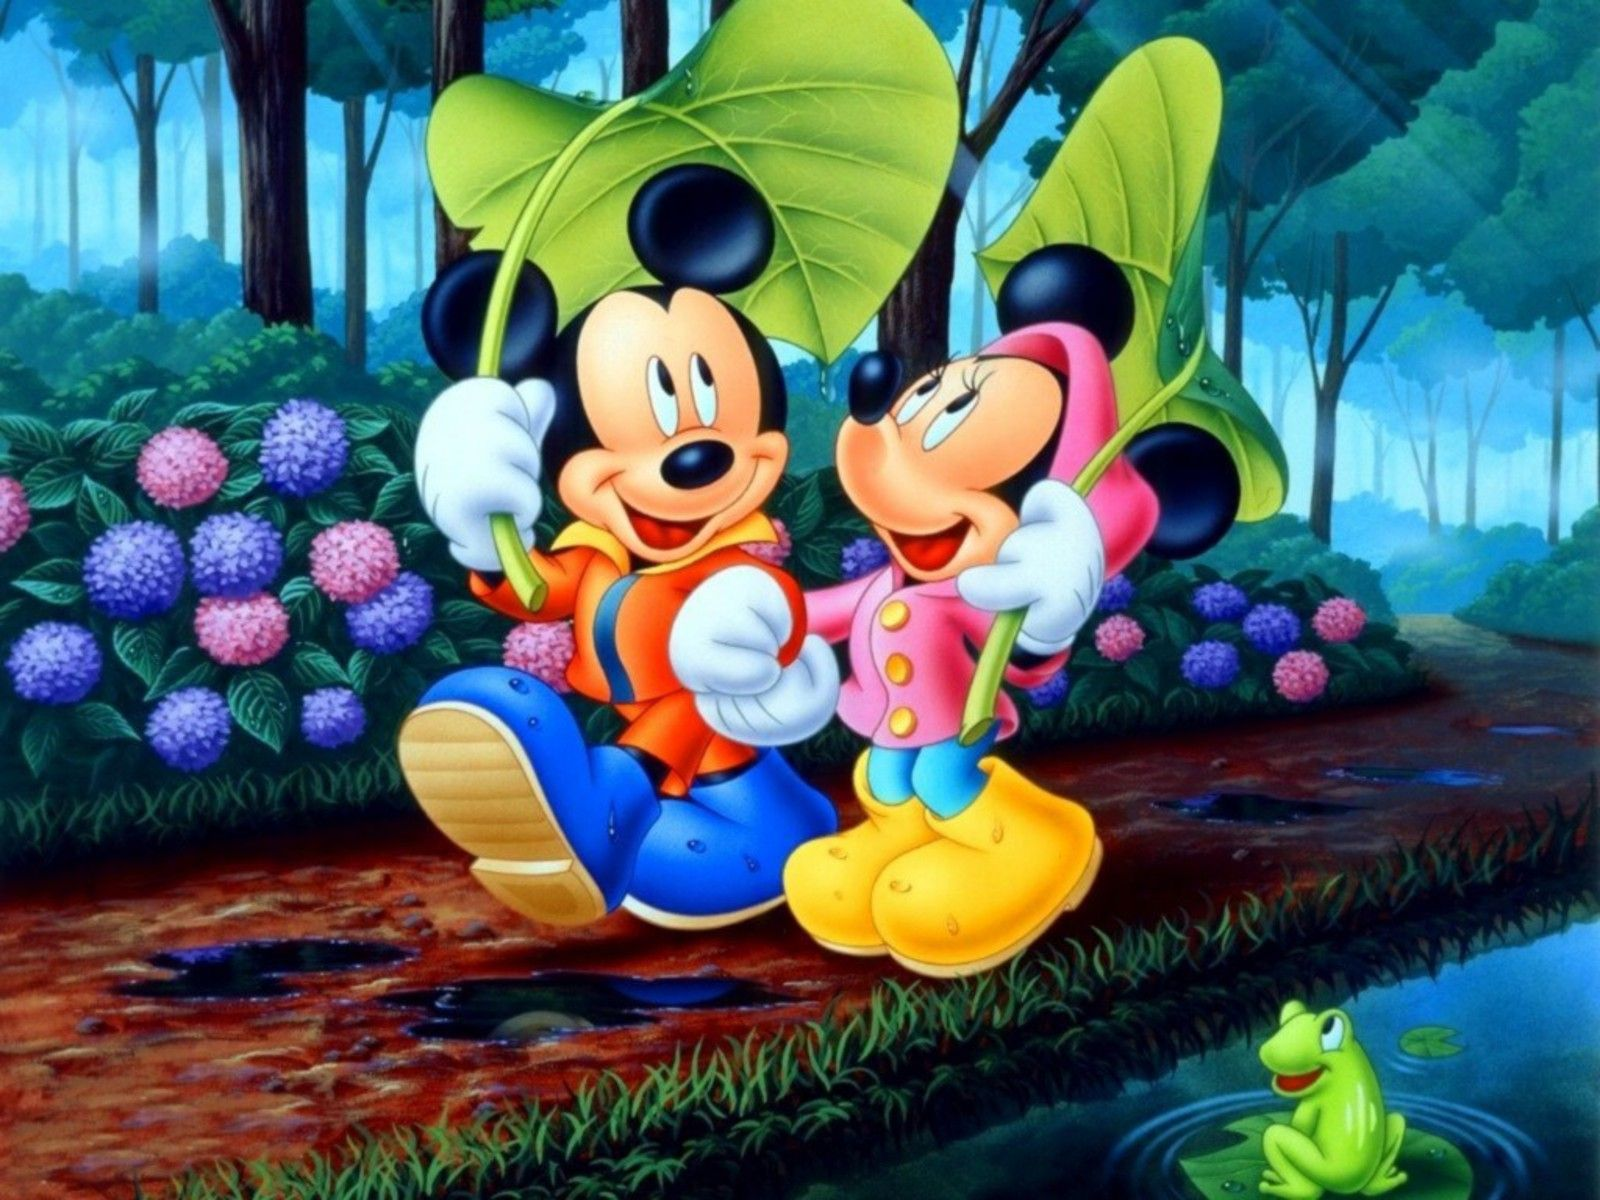 Mickey Mouse wallpaper images pictures download